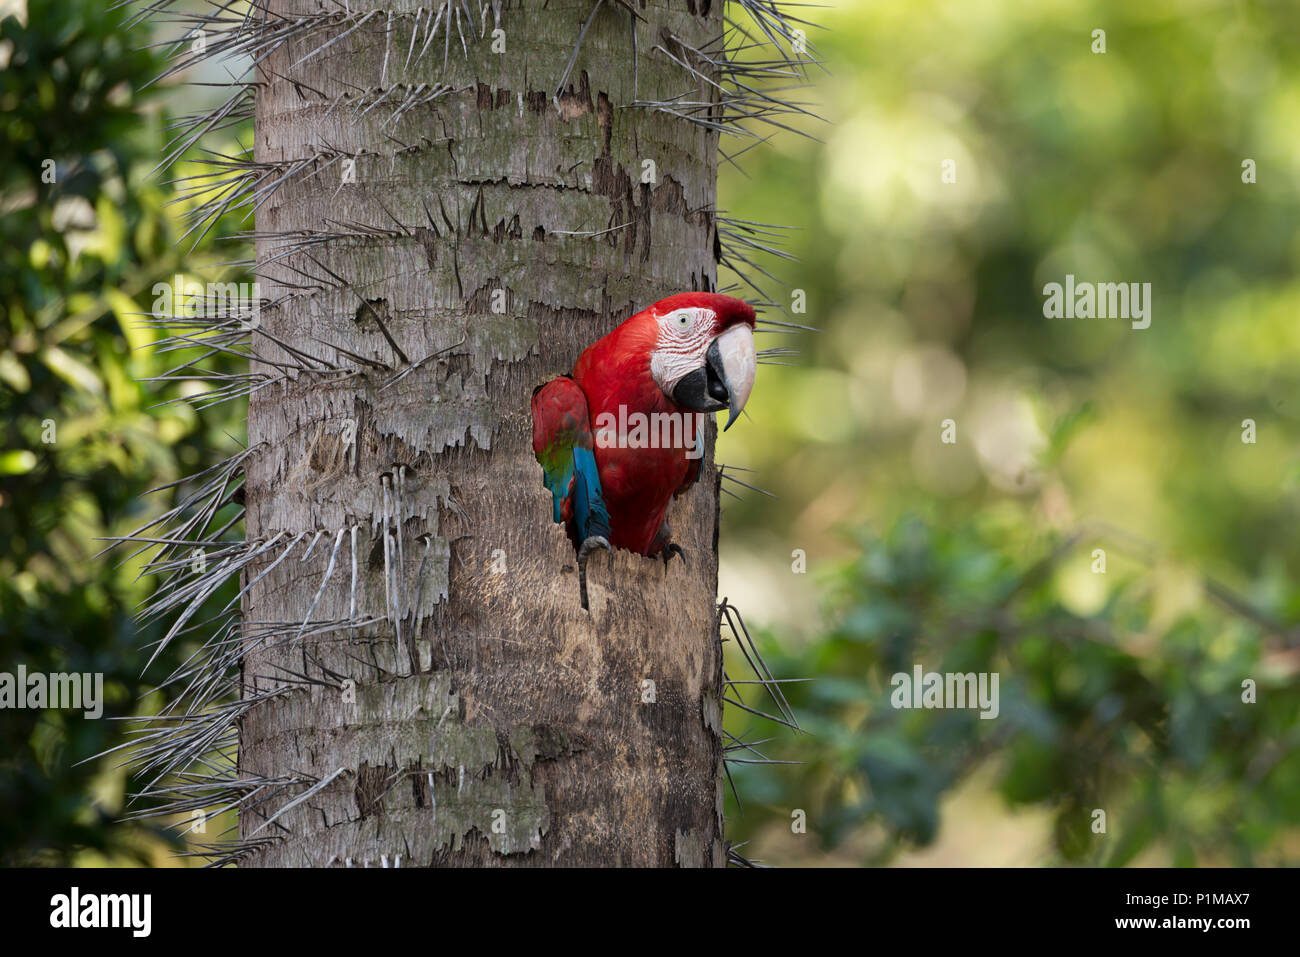 Red-and-green Macaw nesting in a palm tree in Central Brazil - Stock Image